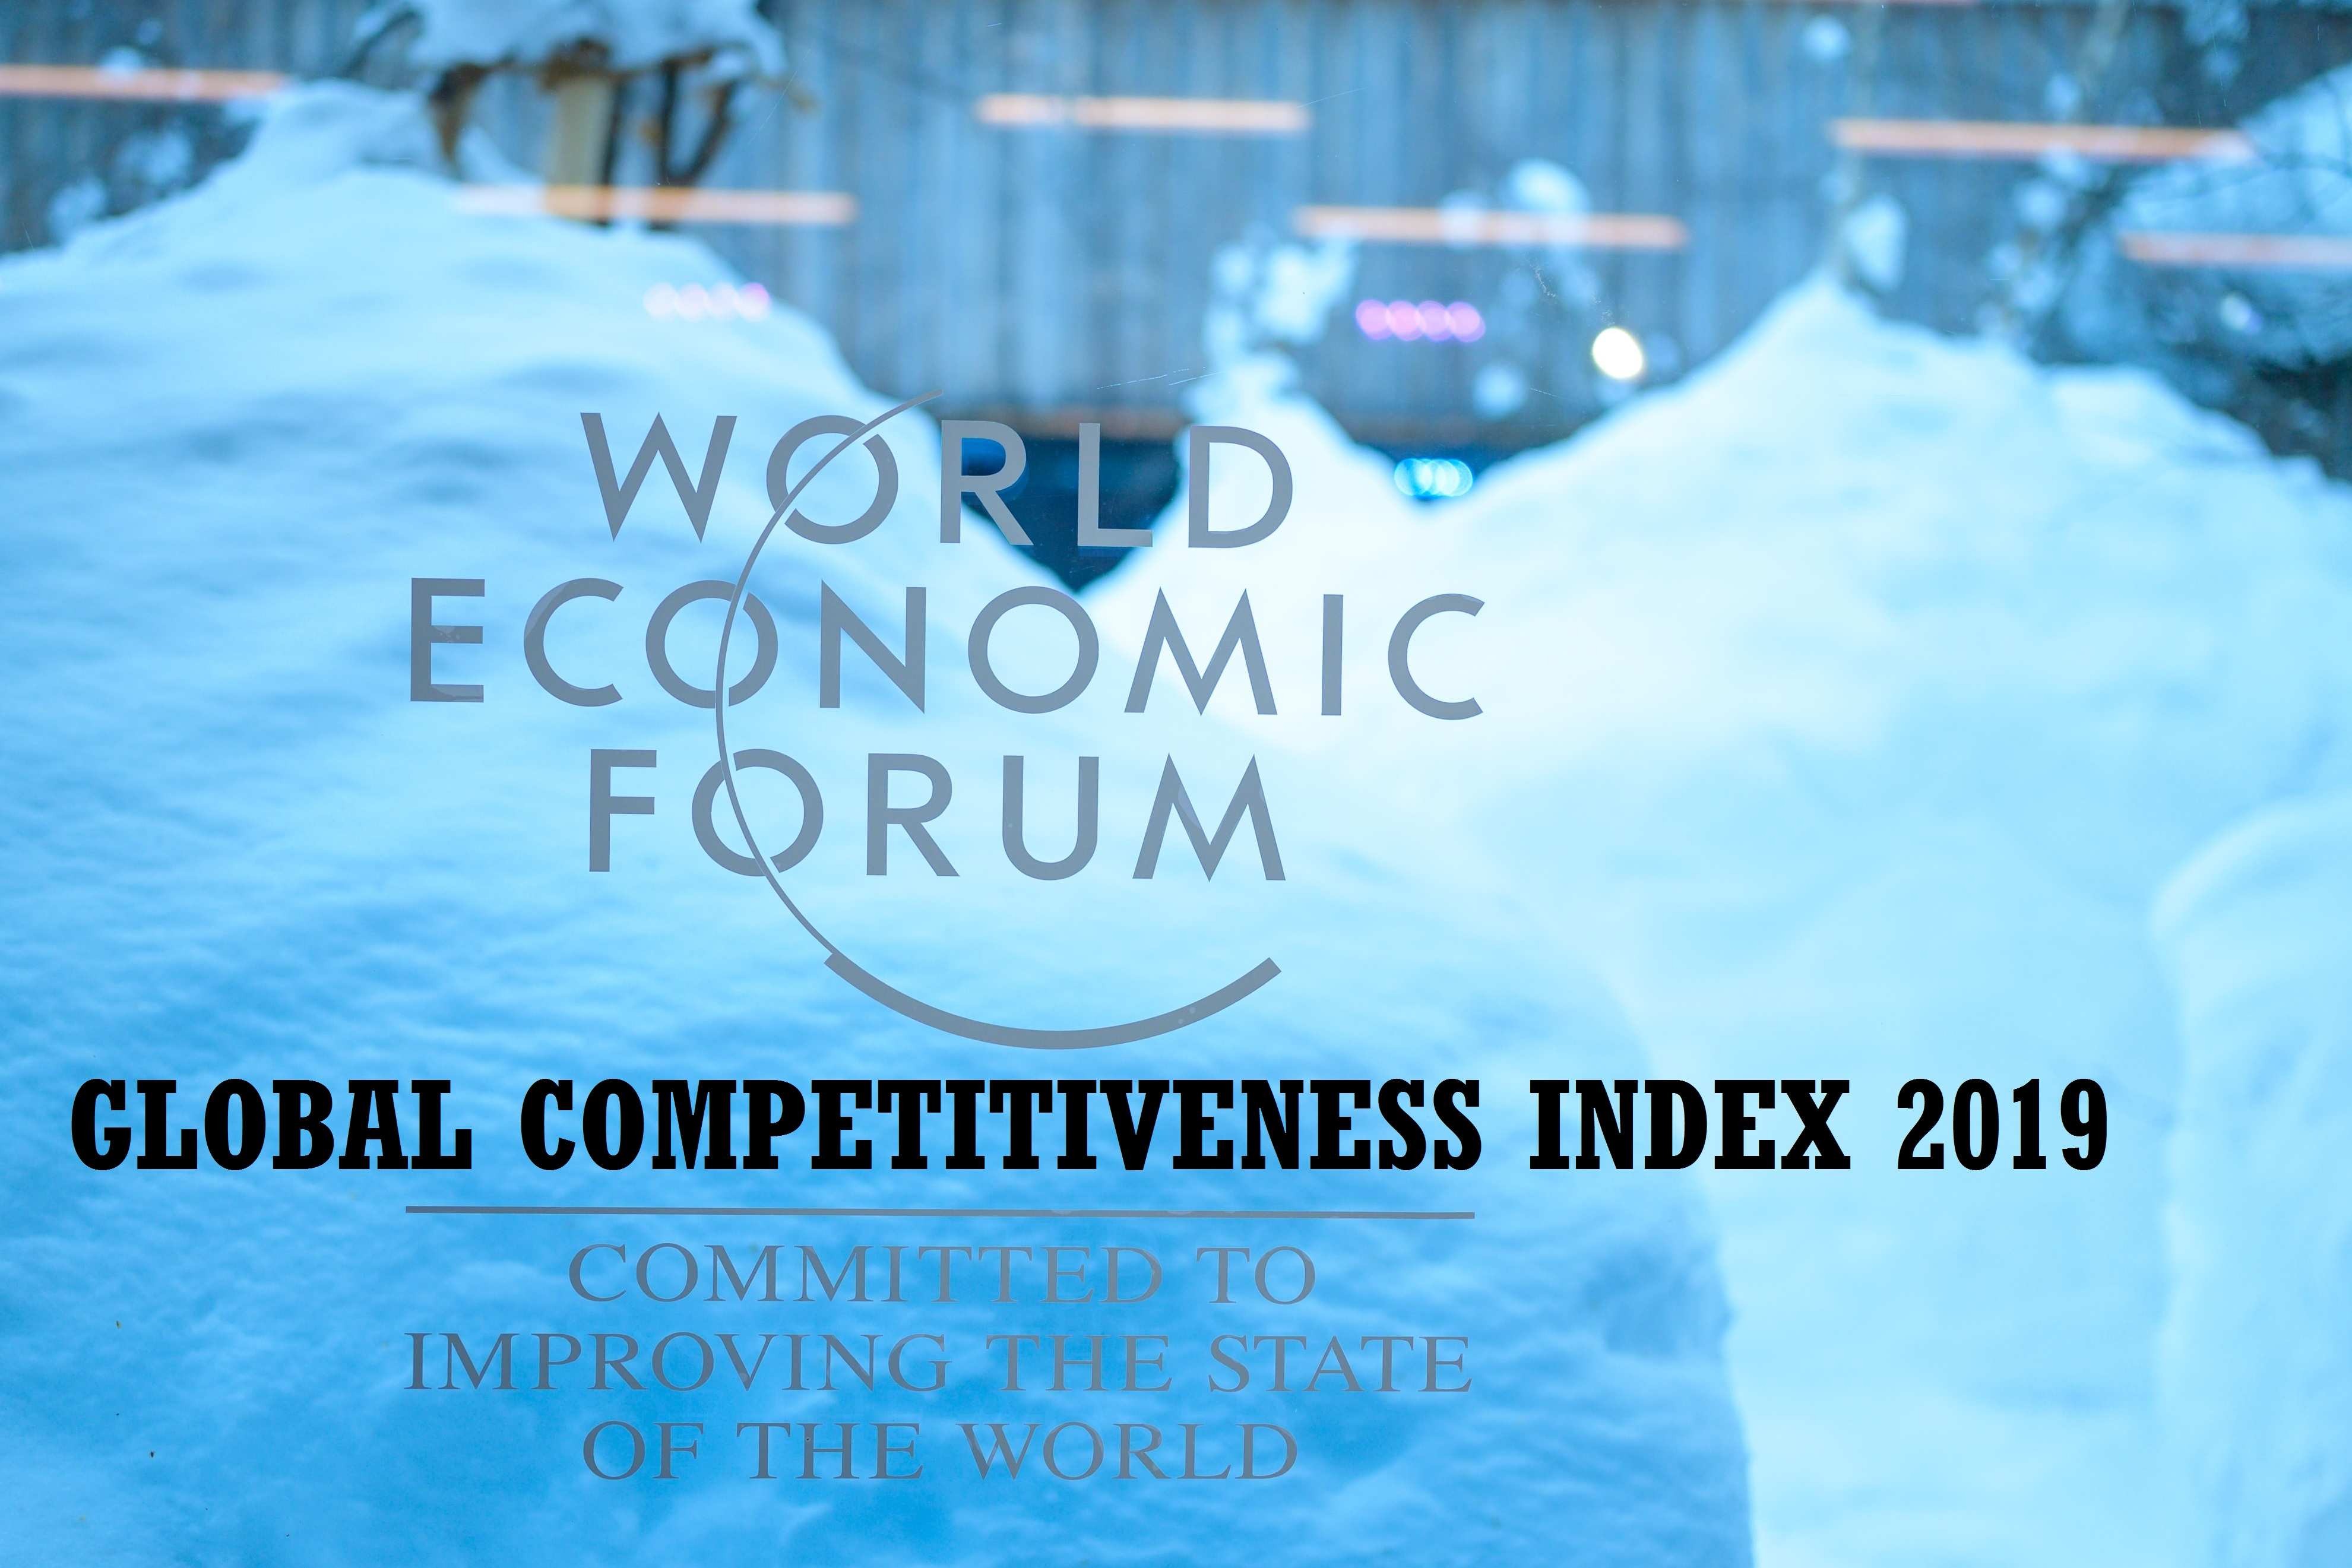 Global competitiveness index 2019